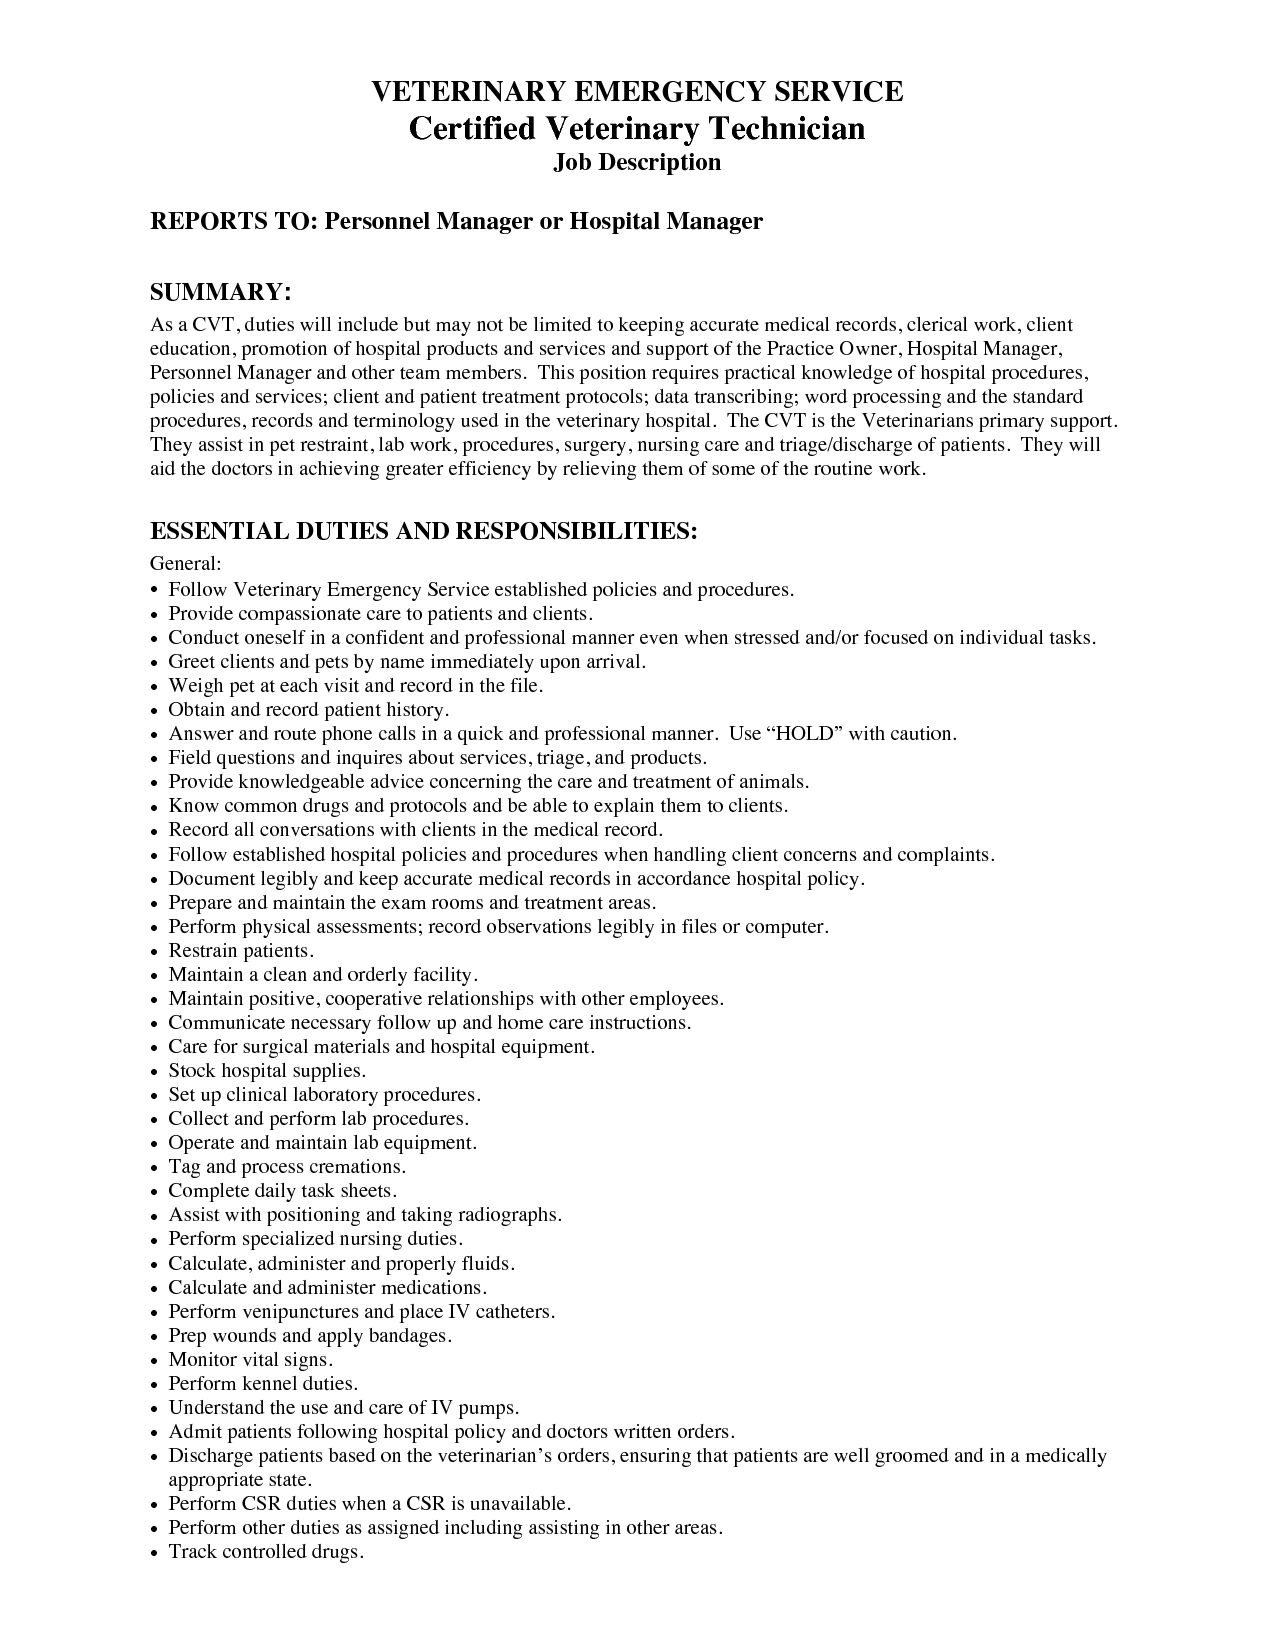 Vet Tech Resume Veterinary Technician Resume  My Work  Pinterest  Veterinary .